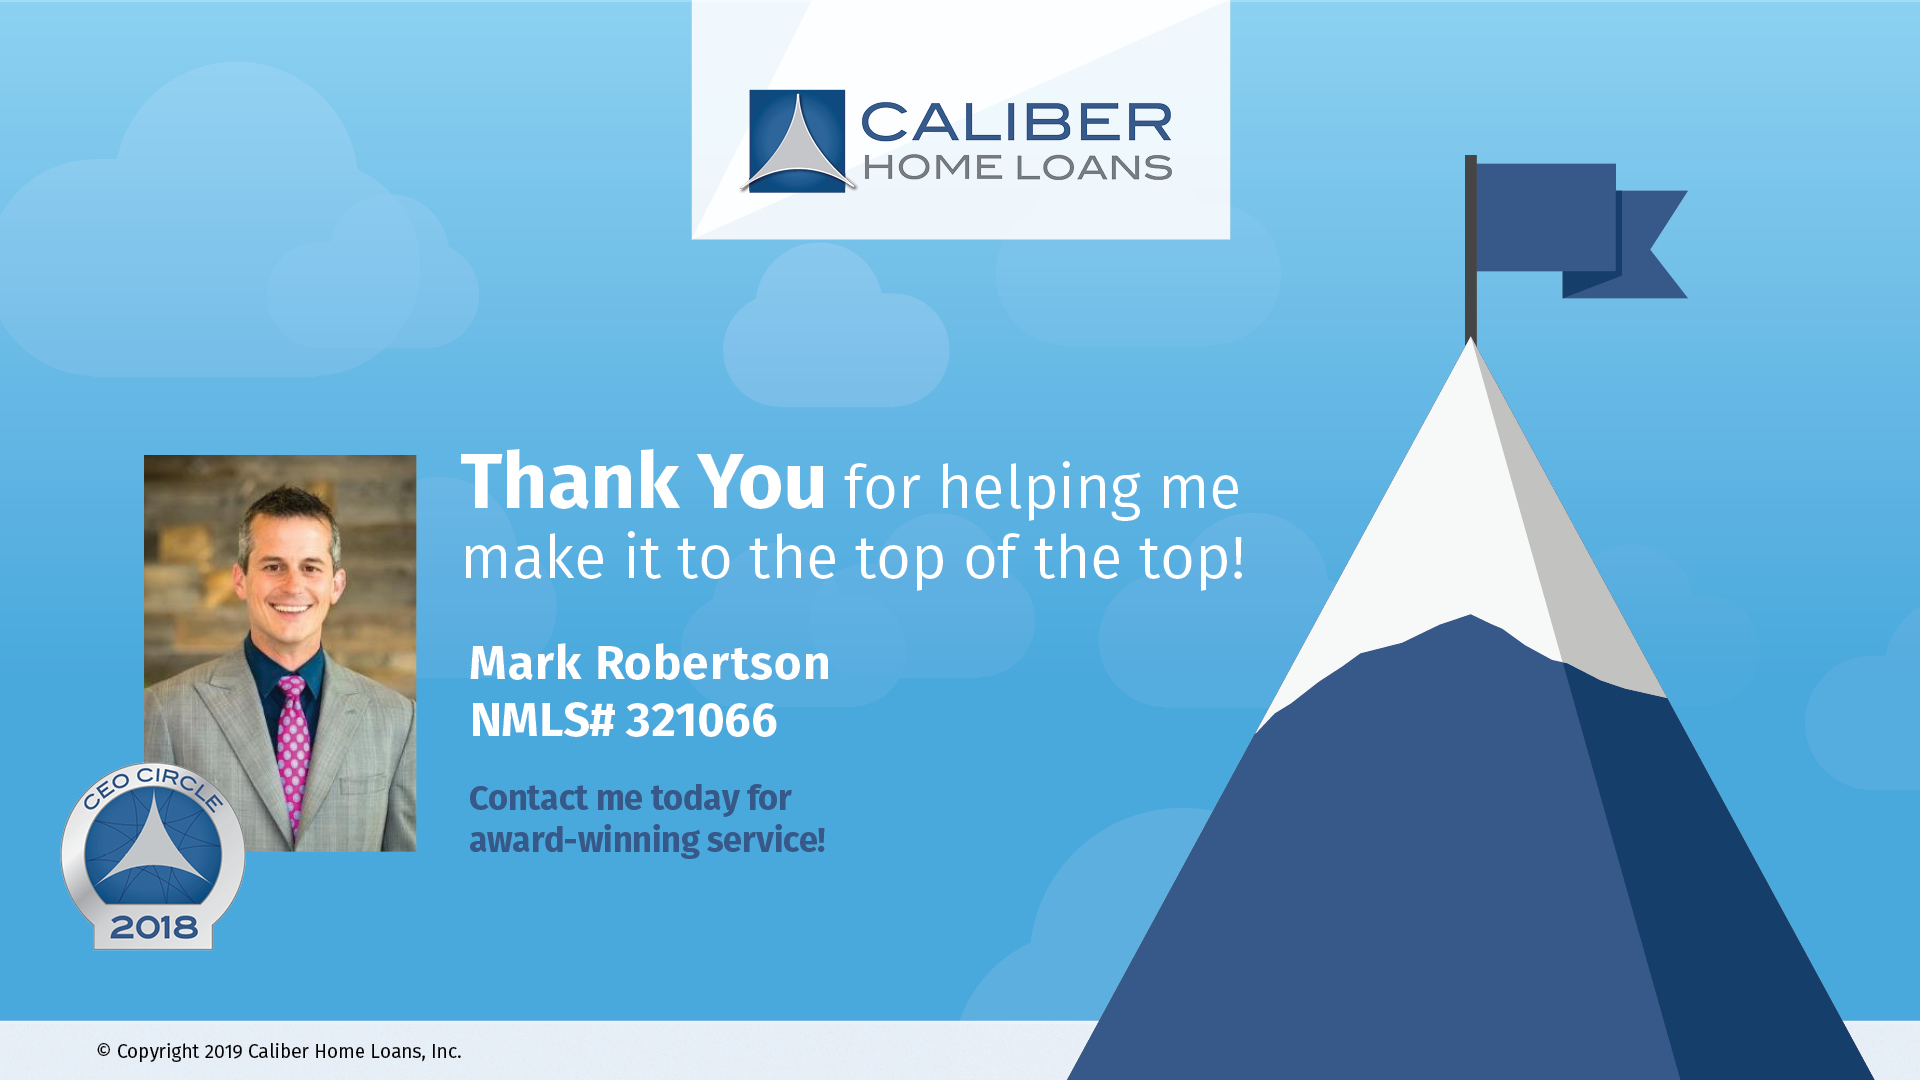 Caliber Home Loans Circle Of Excellence Awards For 2018 We Did It From San Diego Loan Advisor Mark Robertson